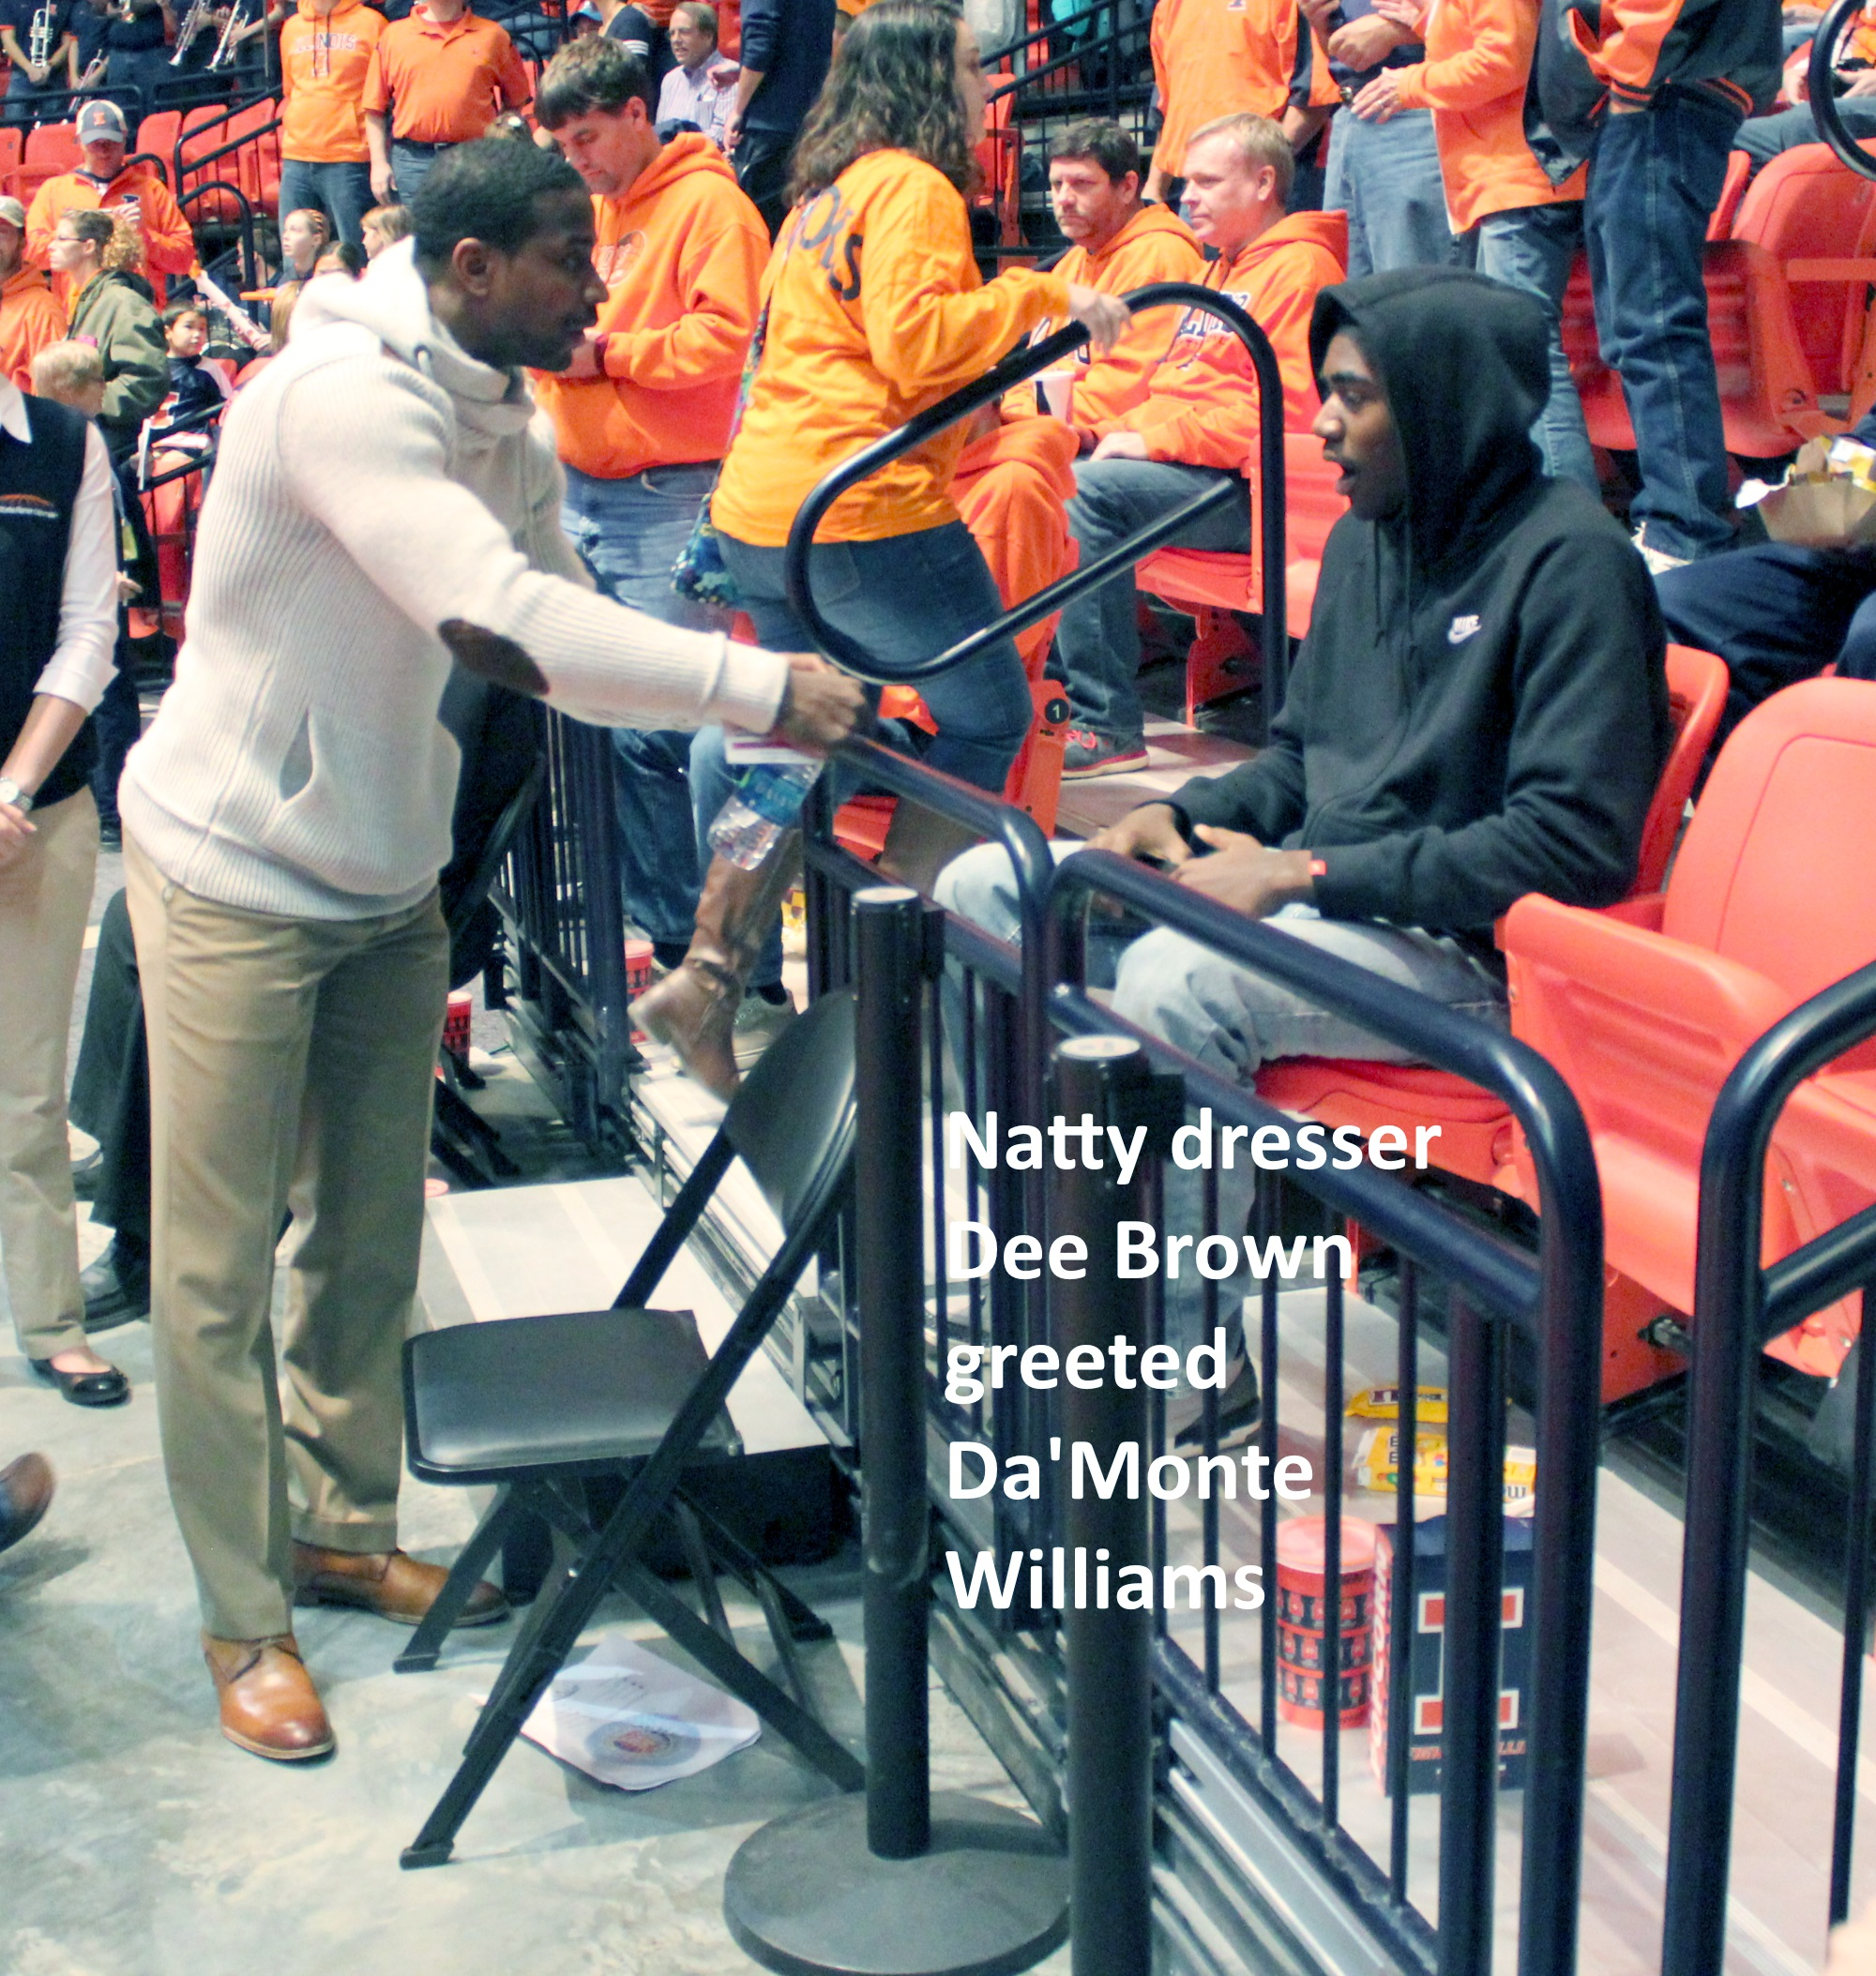 Dee Brown greeted Da'Monte Williams